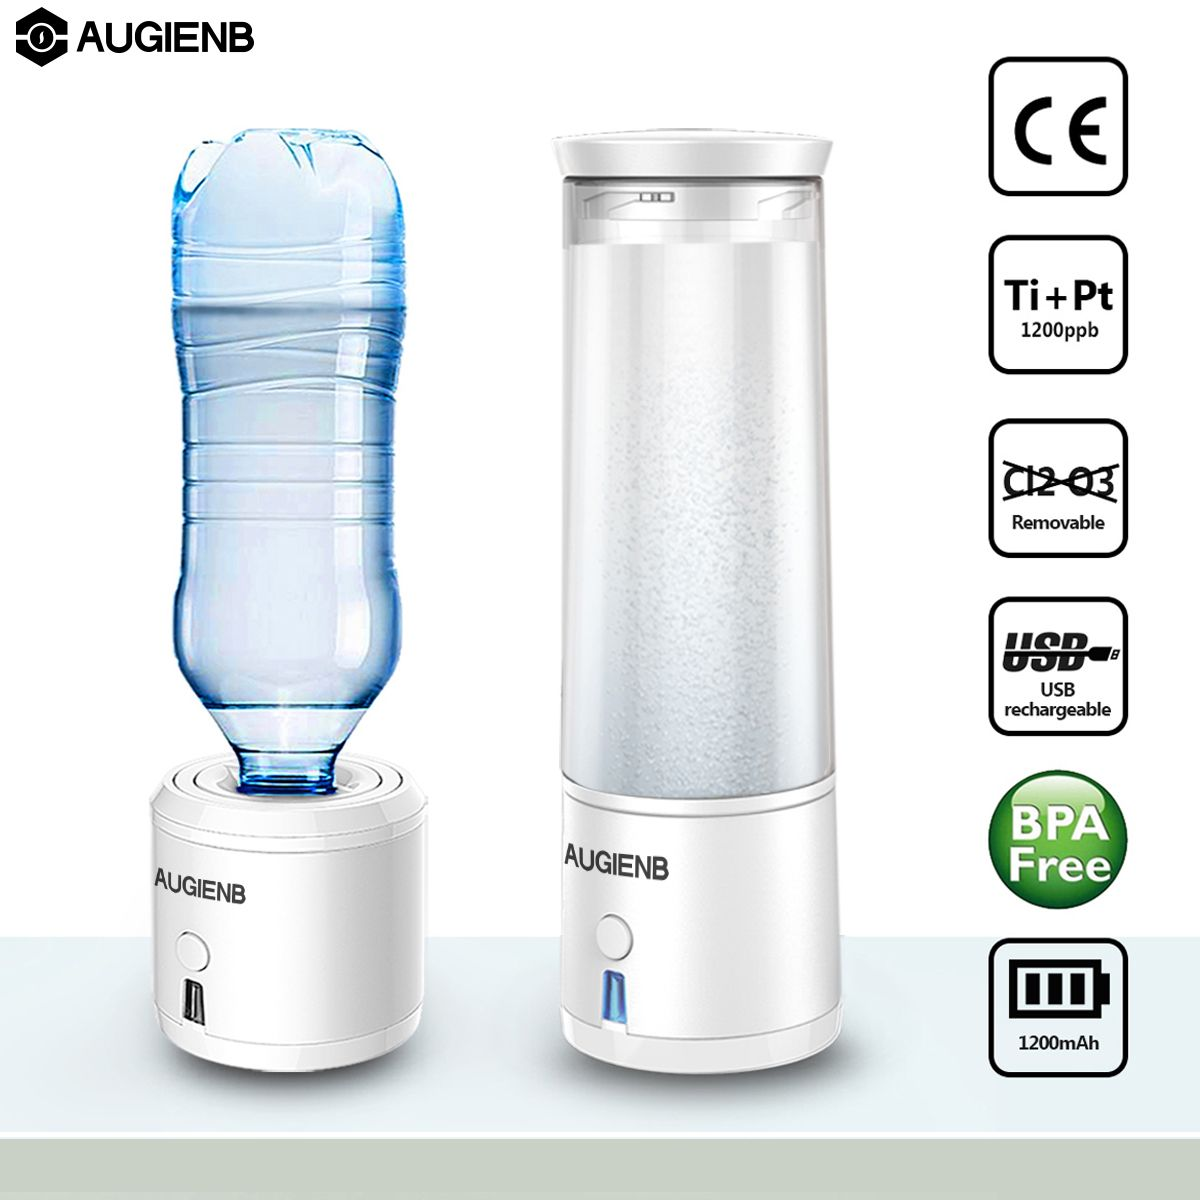 AUGIENB SPE/PEM Membrane H2 Rich Hydrogen Water Bottle Electrolysis Ionizer Generator USB Rechargeable removal O3 CL2